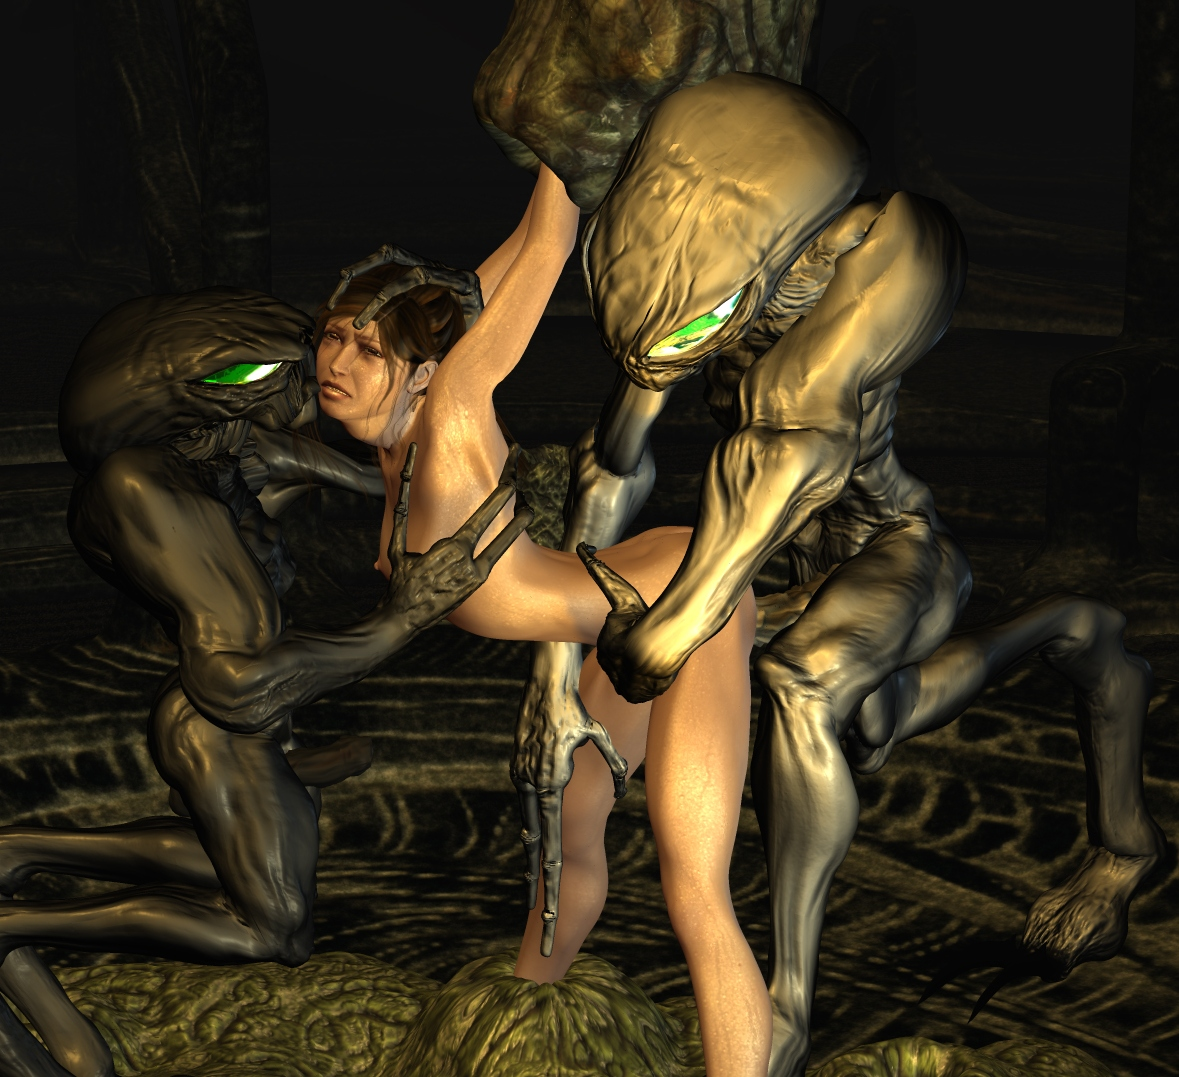 3dmonsters licking naked ass of a girl  hentia pics